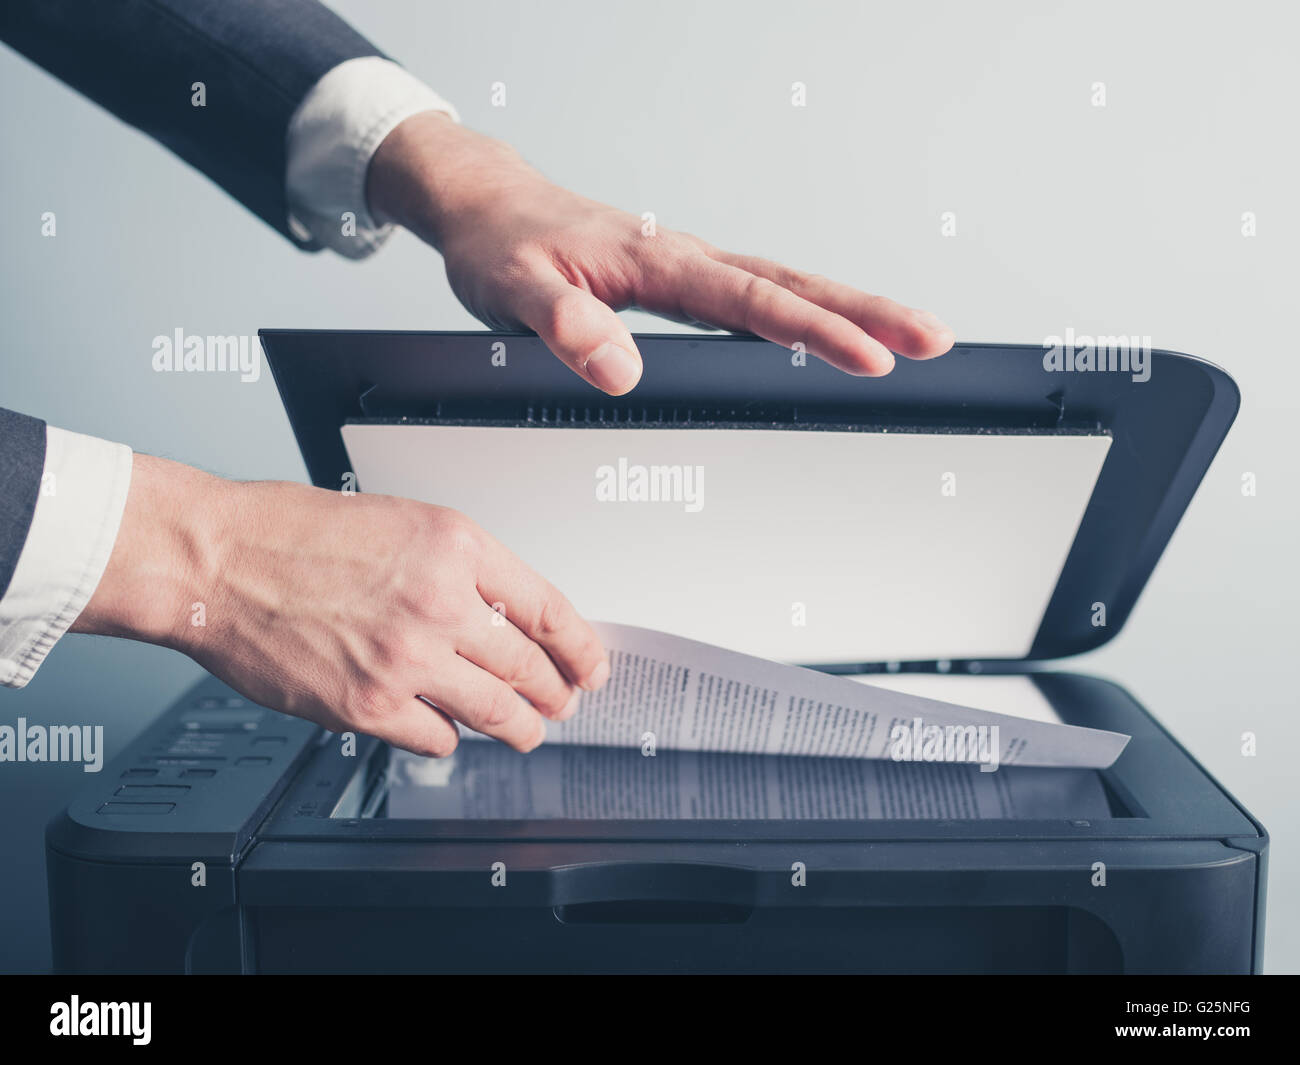 The hands of a young businessman is placing a document on a flatbed scanner in preparation for copying it - Stock Image